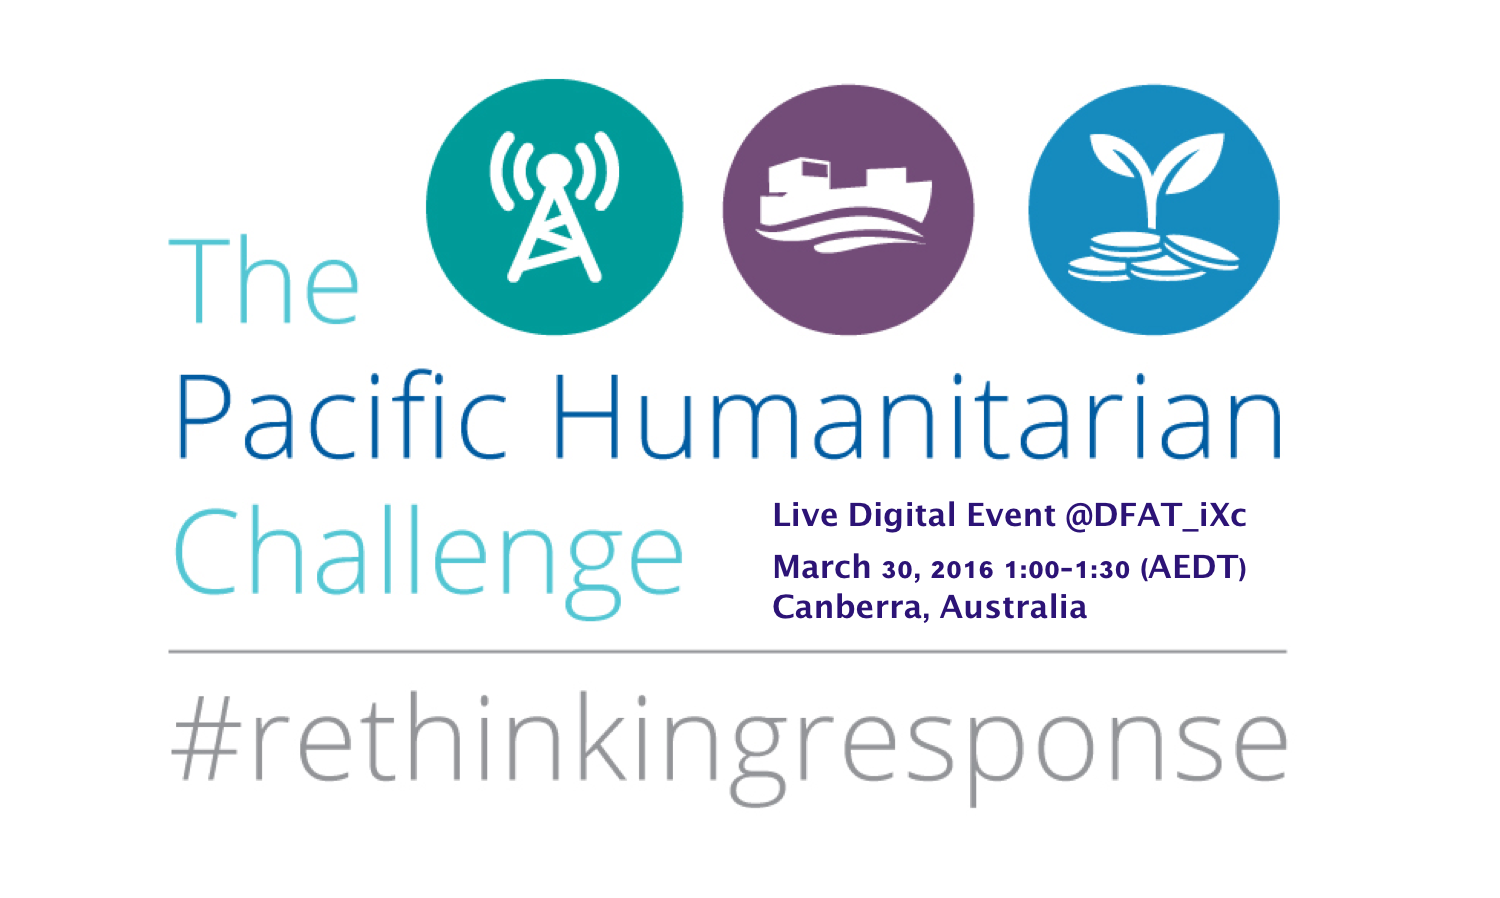 Updated: Watch our #RethinkingResponse Digital Event